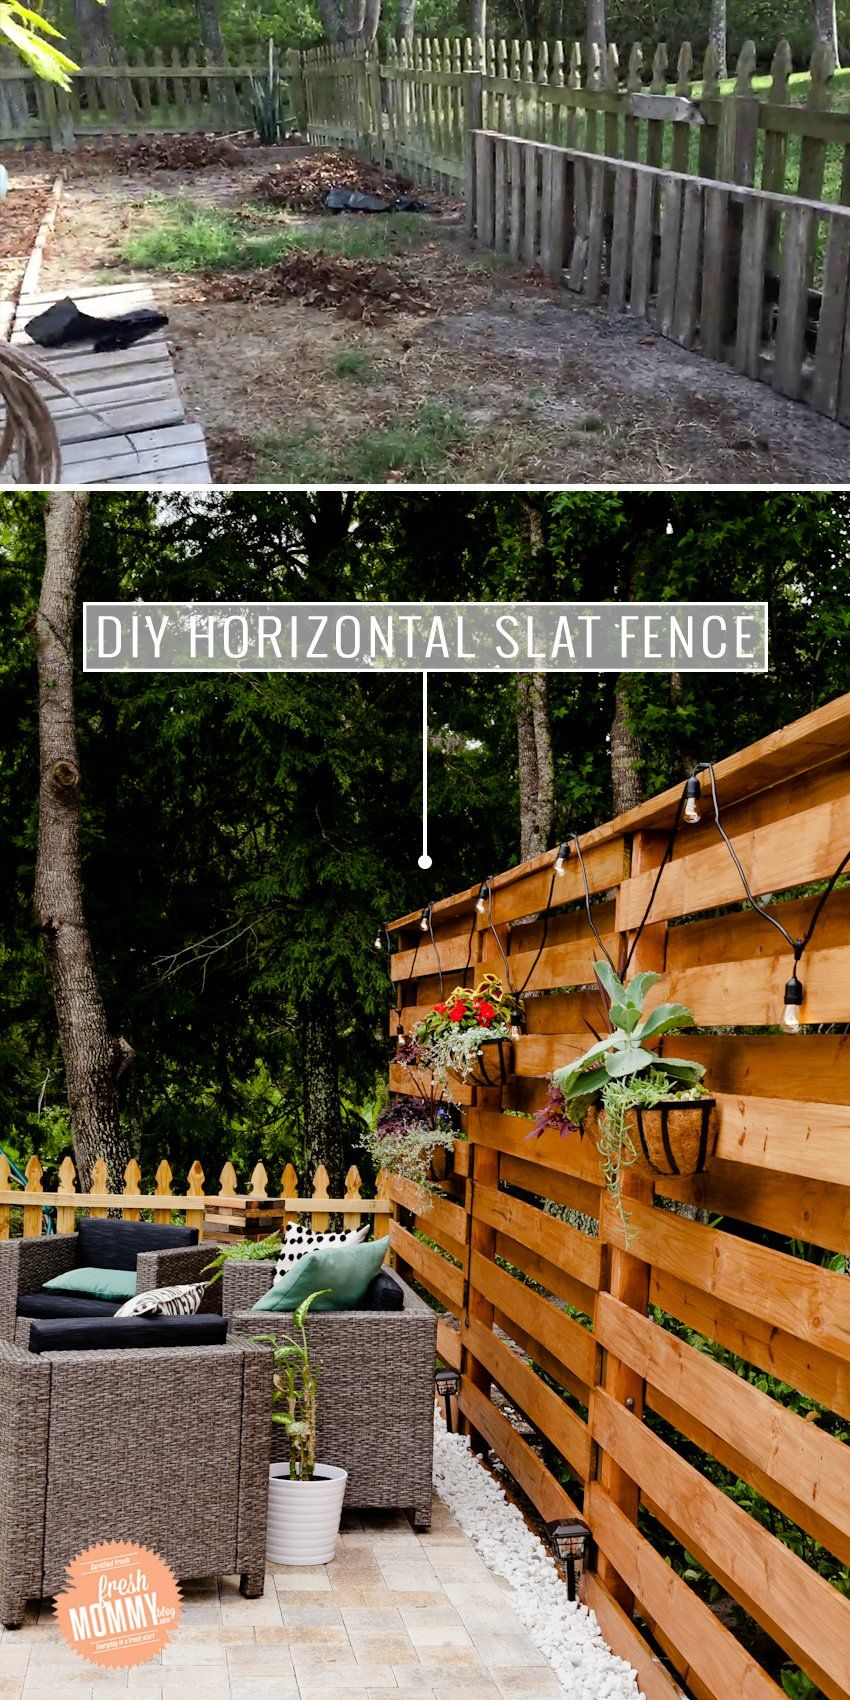 DIY Horizontal Slat Fence | House to Home